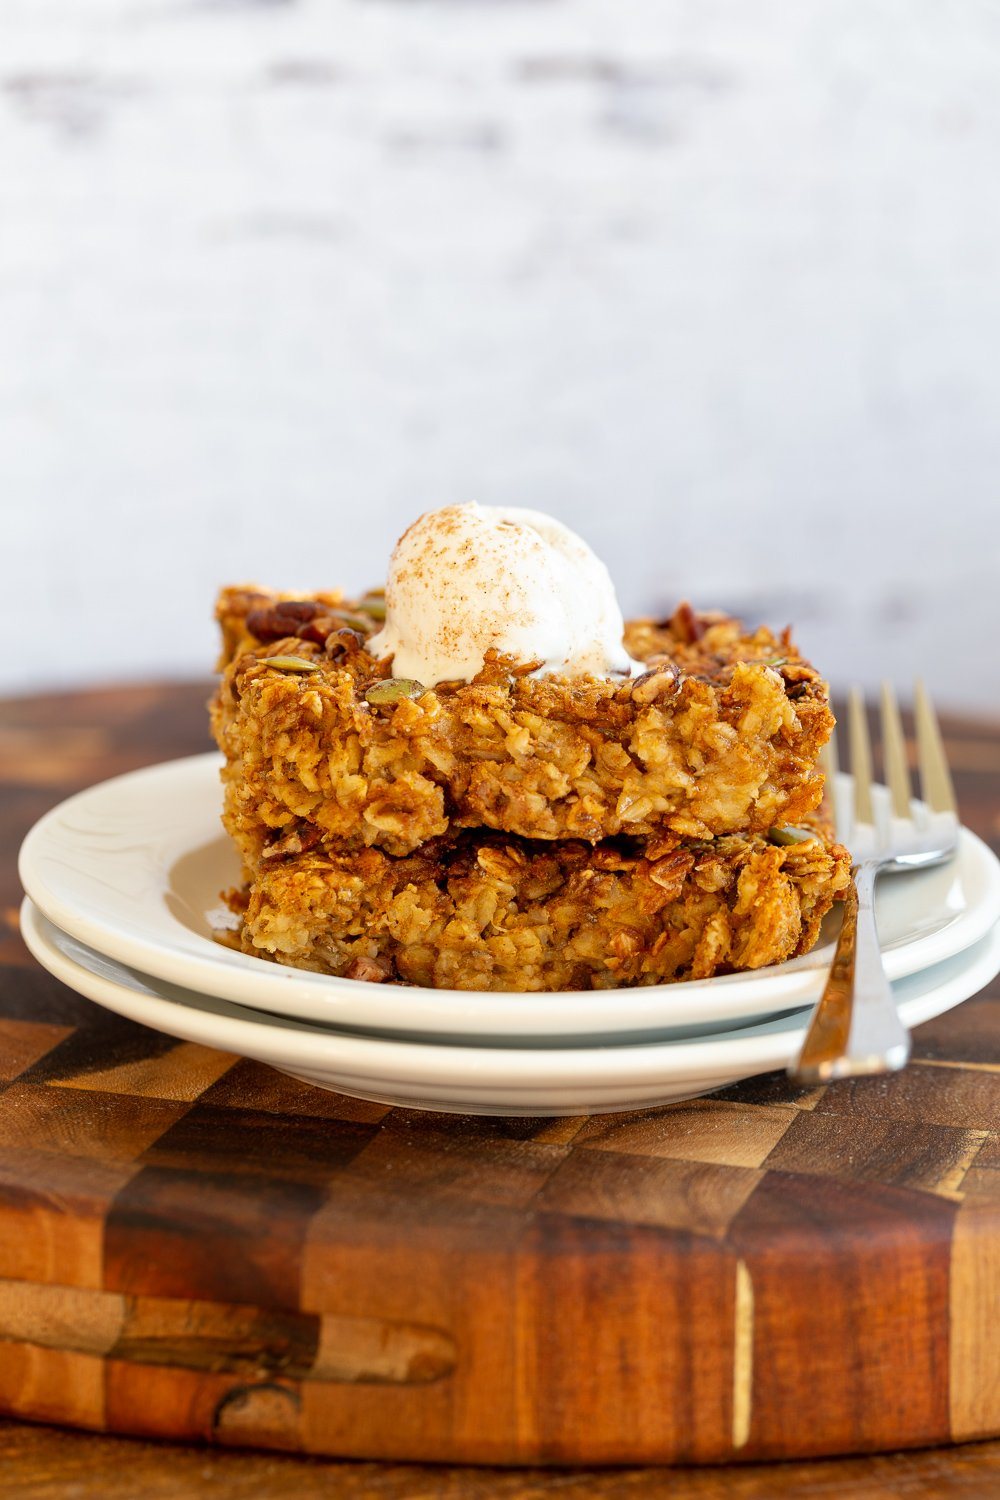 Vegan Pumpkin Baked Oatmeal (No Oil)